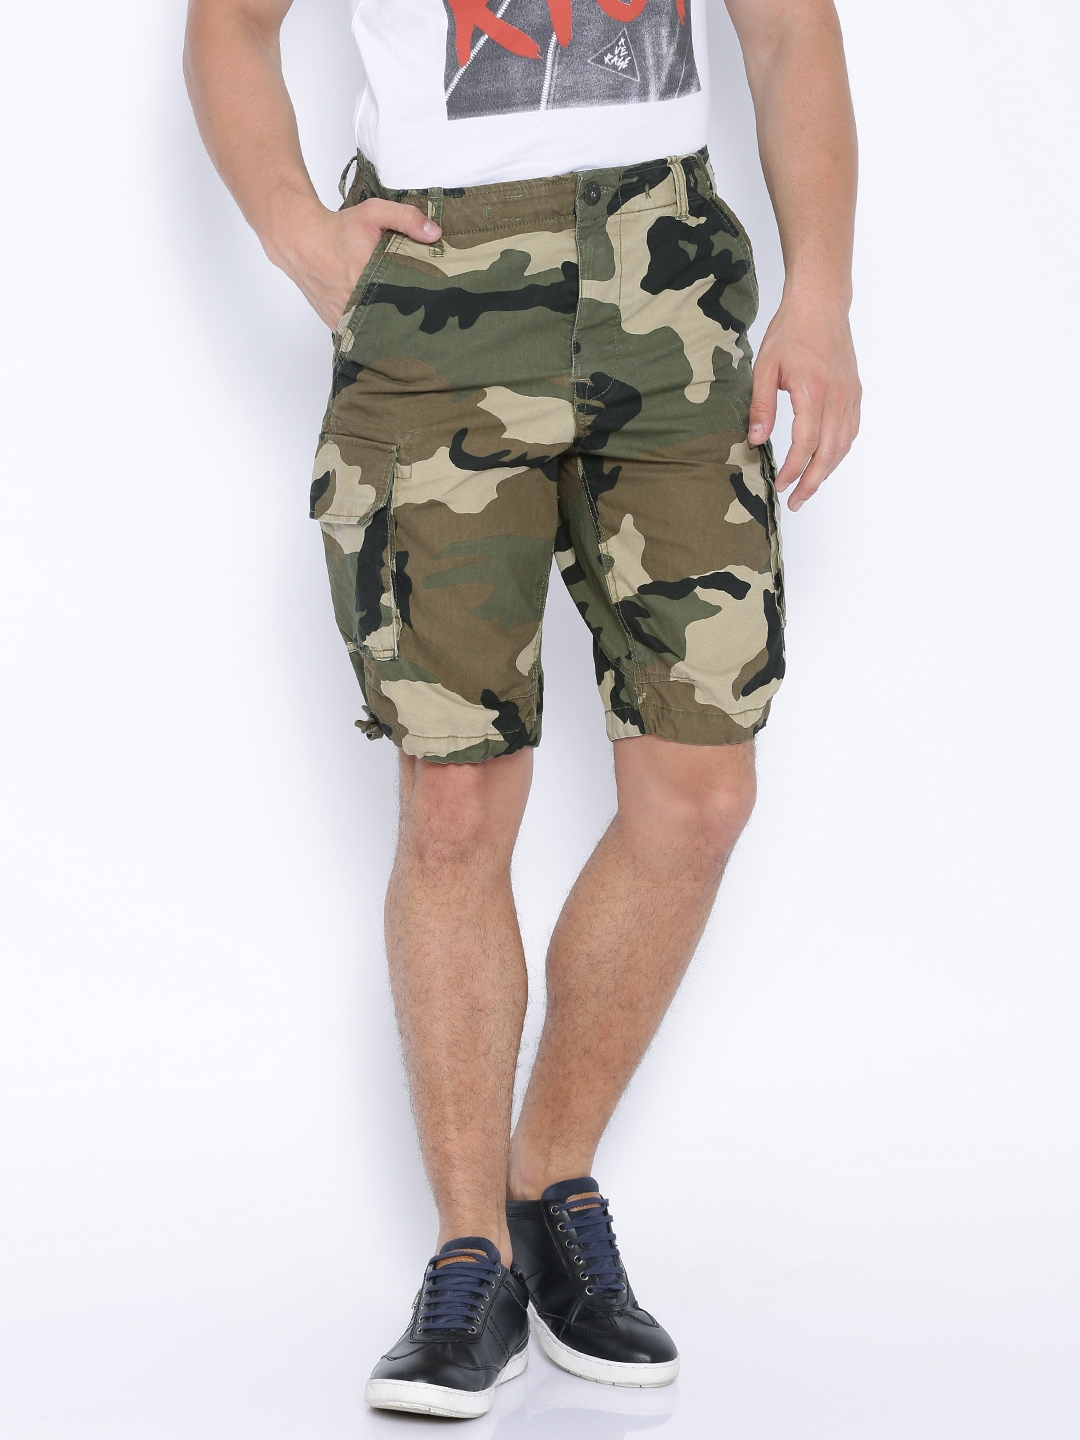 08e3219f51ac3 Buy Jack & Jones Green Camouflage Print Cargo Shorts - Shorts for ...